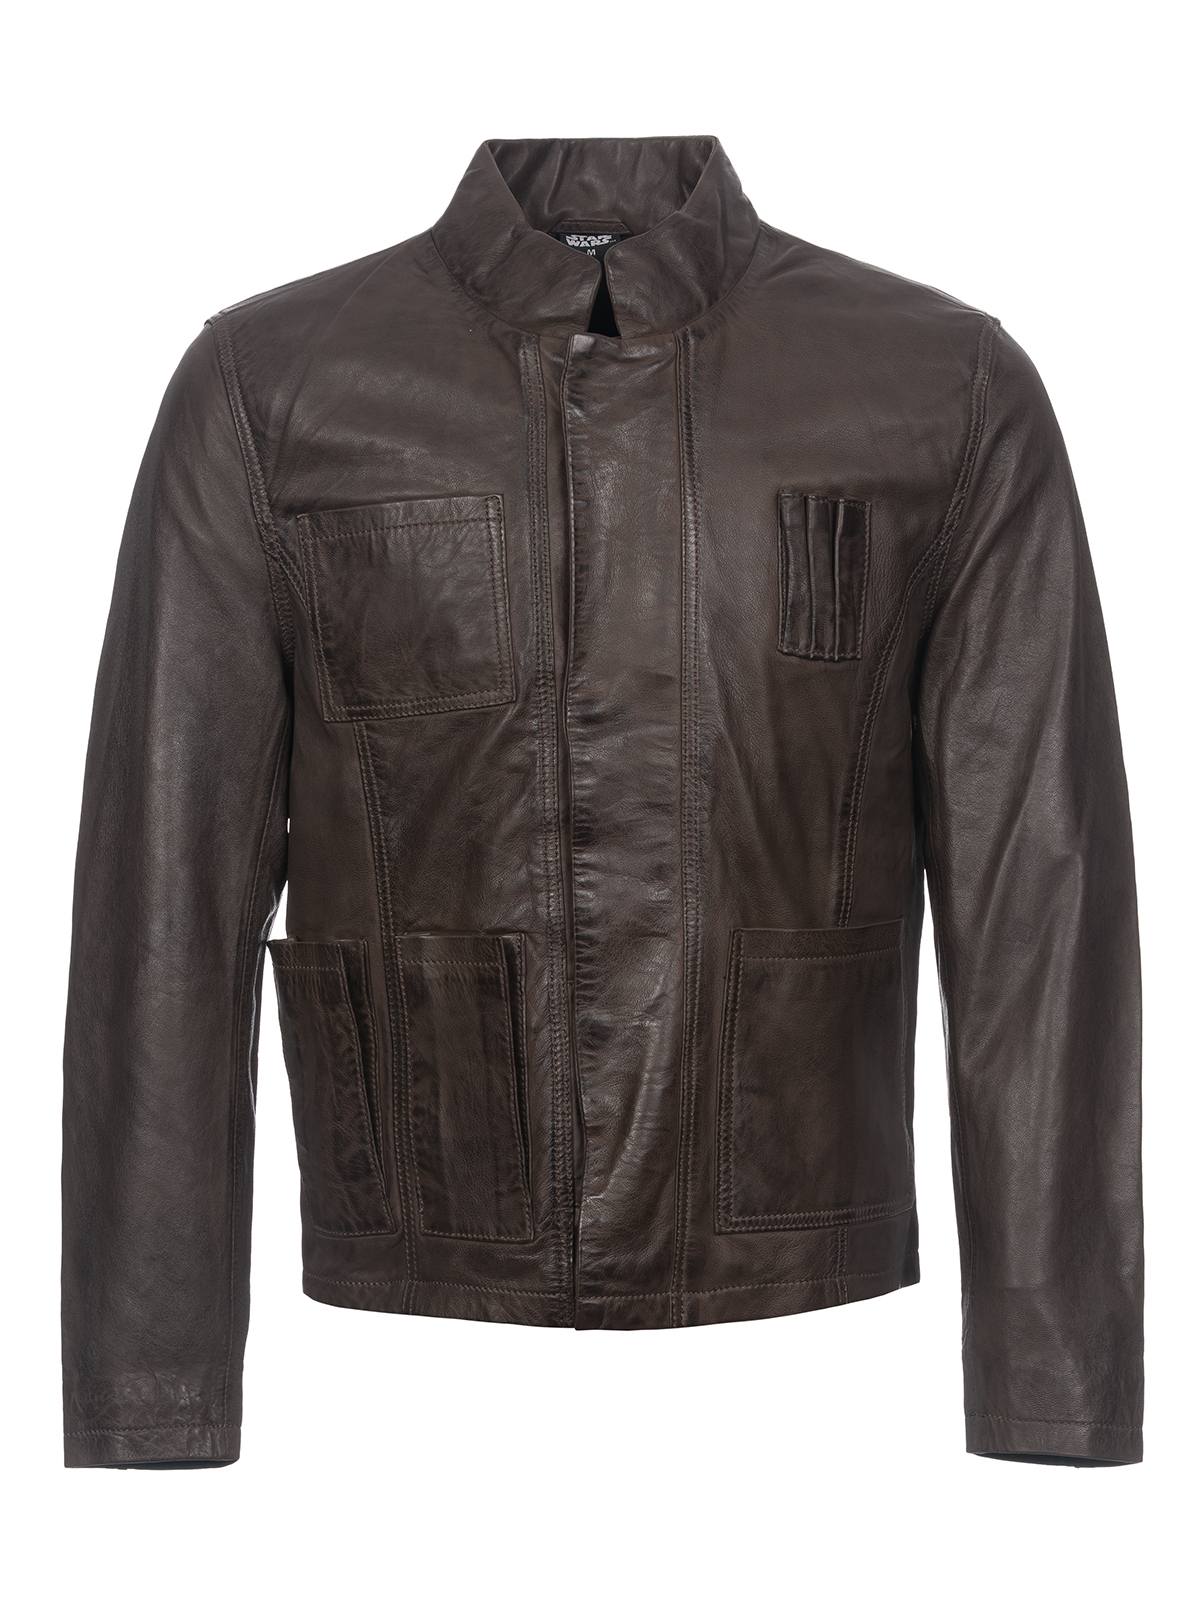 Han Wars Star Solo For Jacket Leather Brown Men doBWxrCe